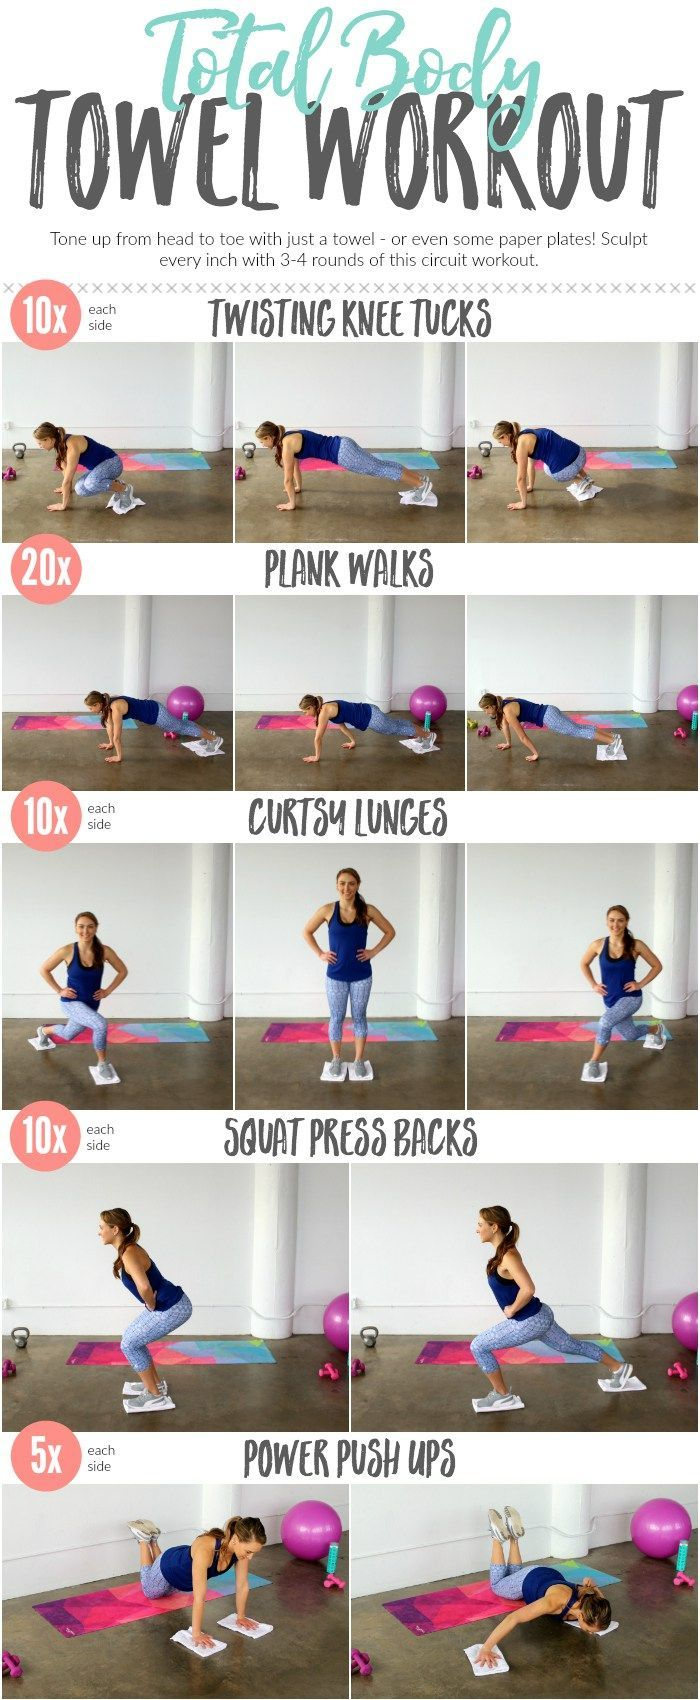 A full body workout that will tone from head to toe with just a towel - or even some paper plates! Sculpt every inch with this total body towel workout.